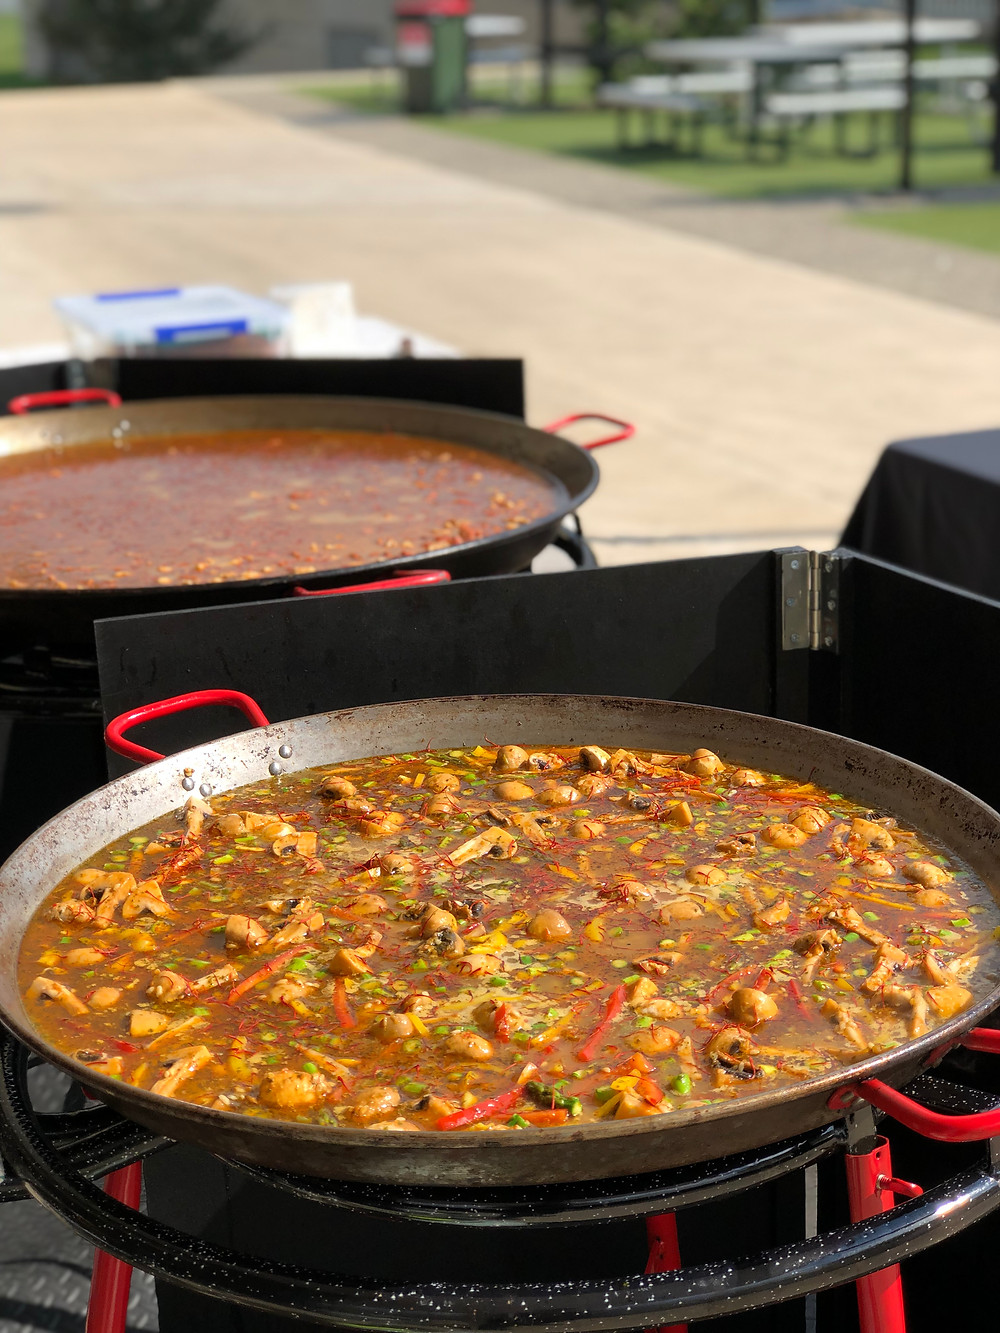 Everybody loved the Paella